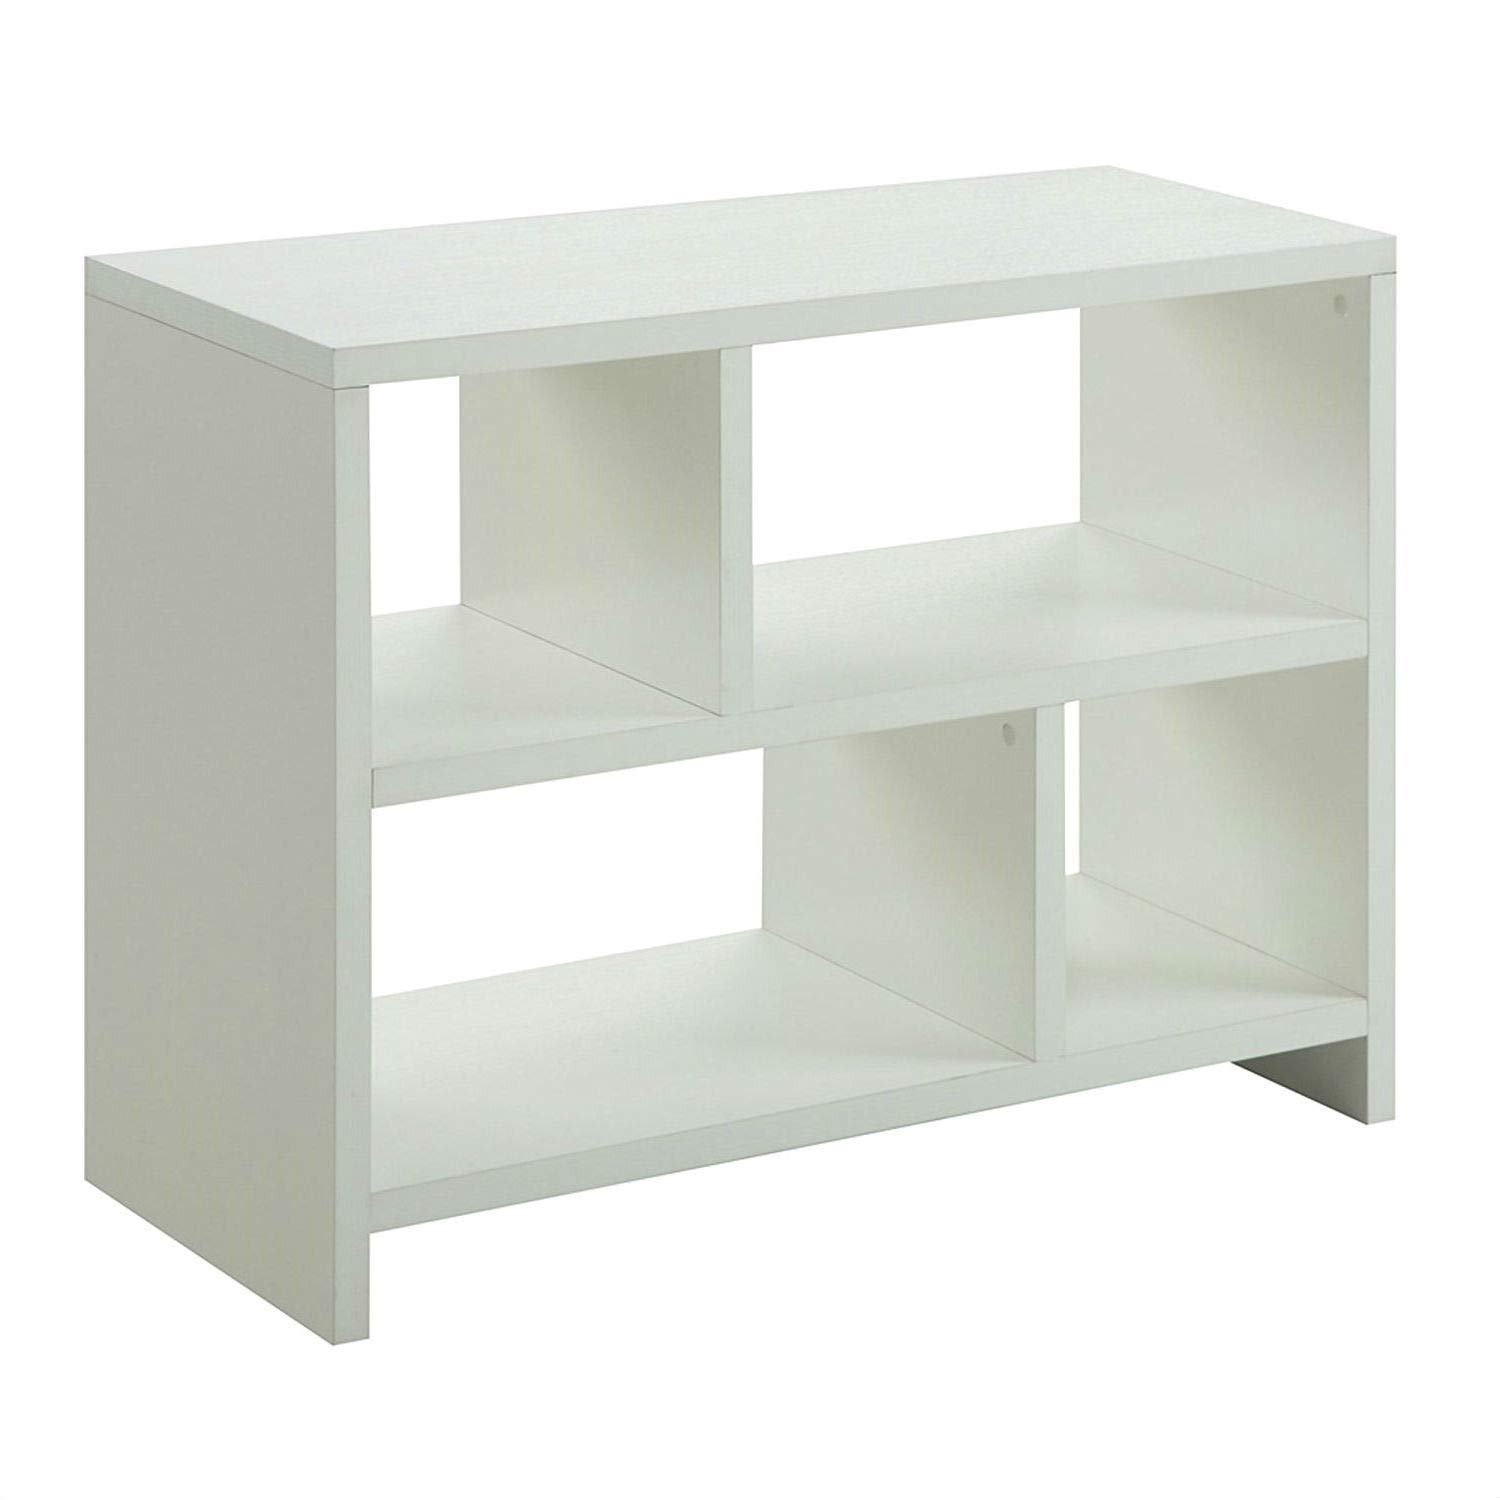 Trustpurchase White 2-Shelf Modern Bookcase Console Table, Modern Design of This White 2-Shelf Modern Bookcase Console Table Will Complete The Look of The Contemporary Home, Fits Easy with Any Décor